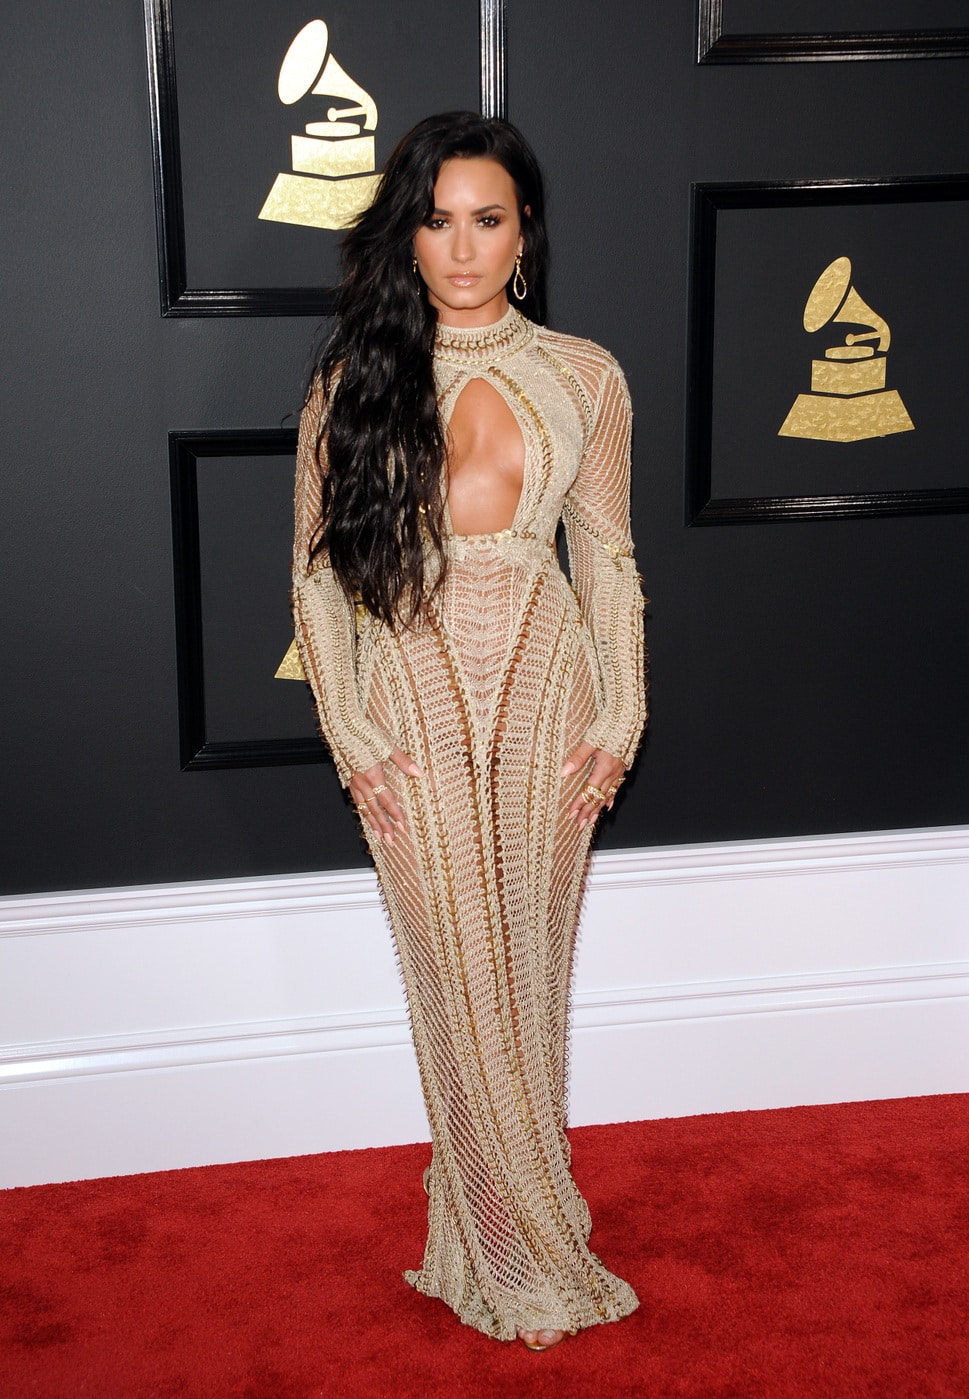 Demi Lovato in Julien Macdonald at the 2017 Grammy Awards